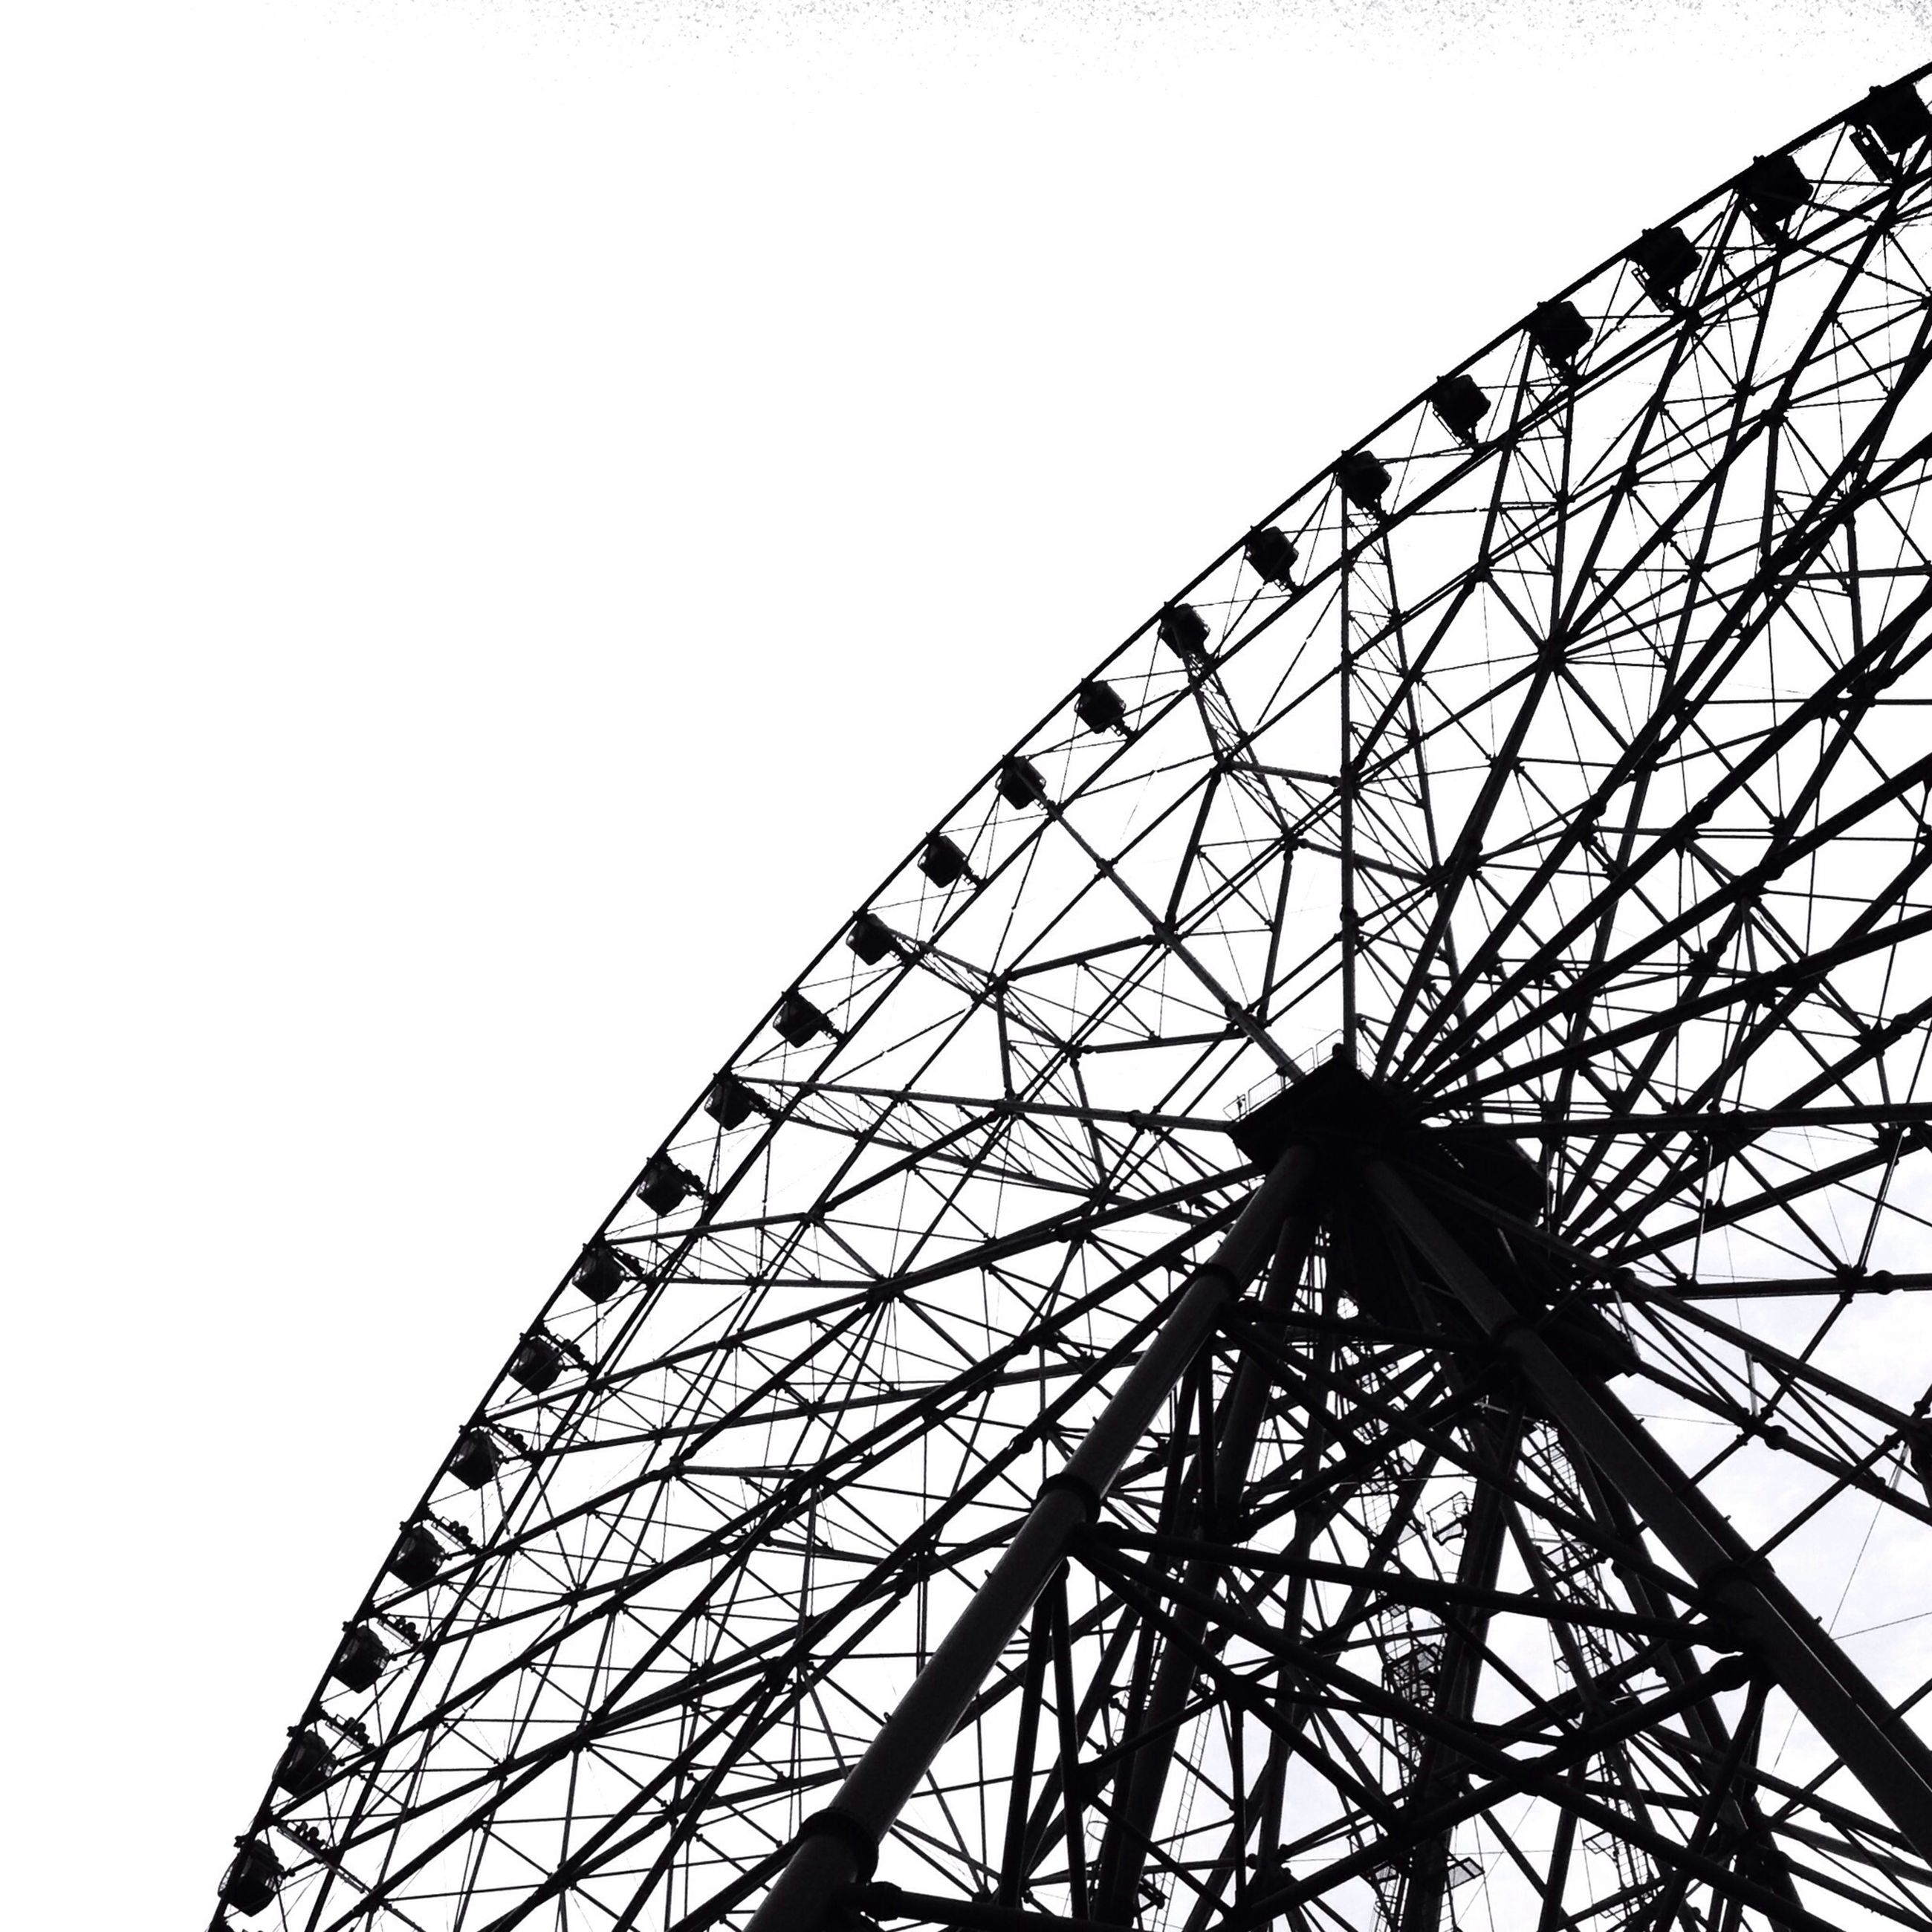 low angle view, clear sky, metal, ferris wheel, amusement park ride, metallic, amusement park, built structure, architecture, arts culture and entertainment, sky, silhouette, engineering, grid, no people, day, outdoors, tall - high, connection, tower